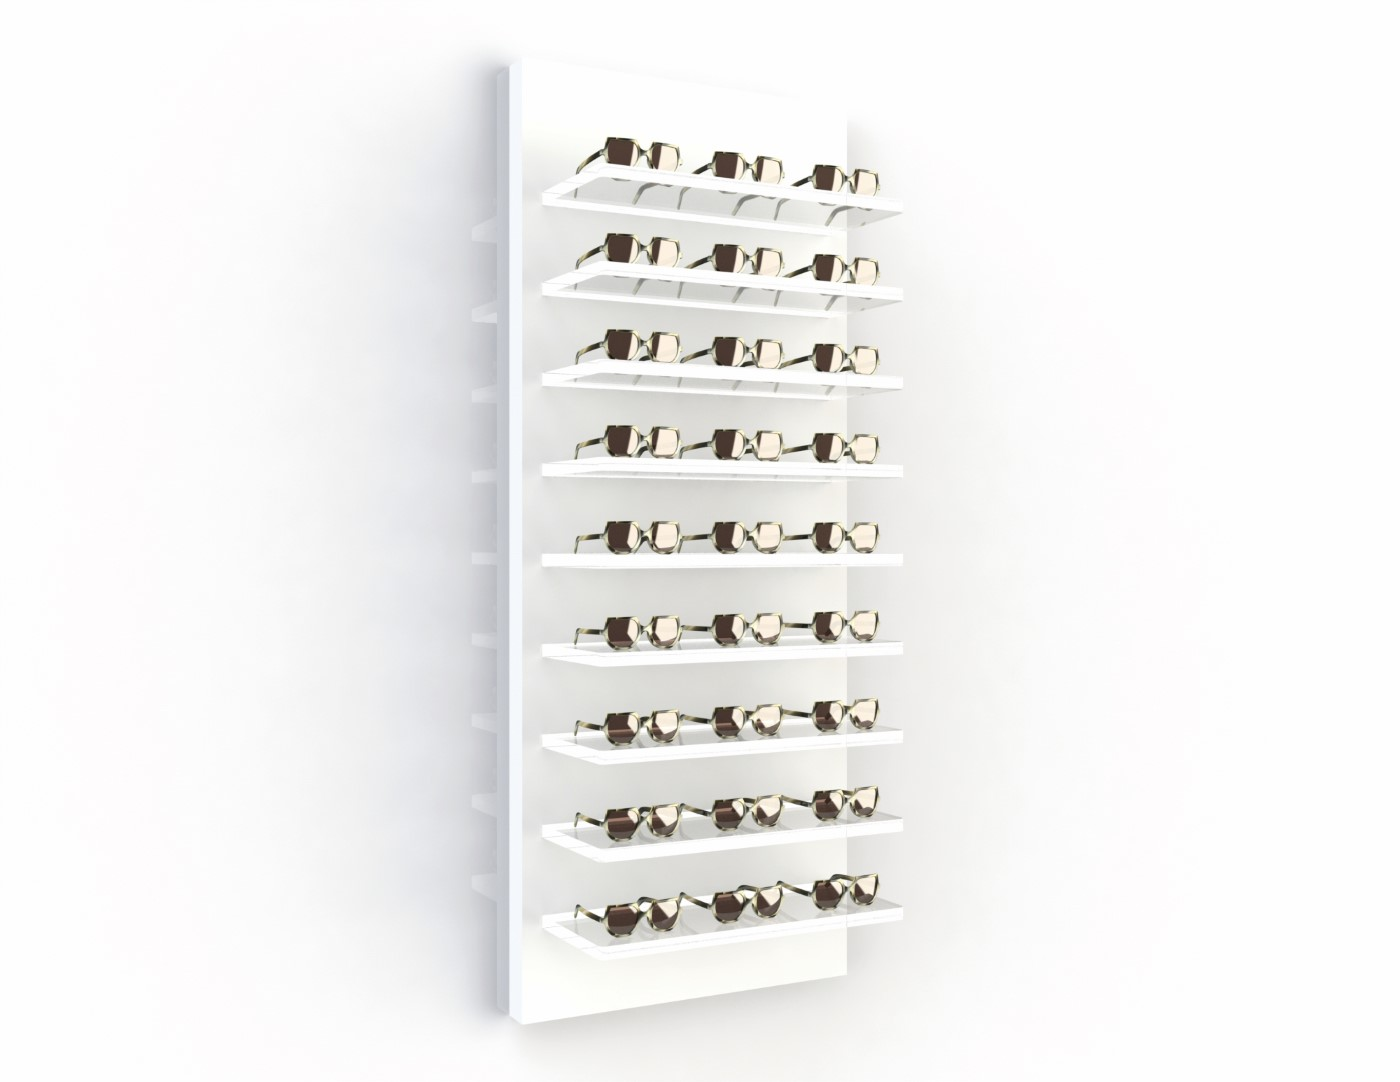 <strong>508140W</strong><br>9x 20mm acrylic shelves<br>27 frames